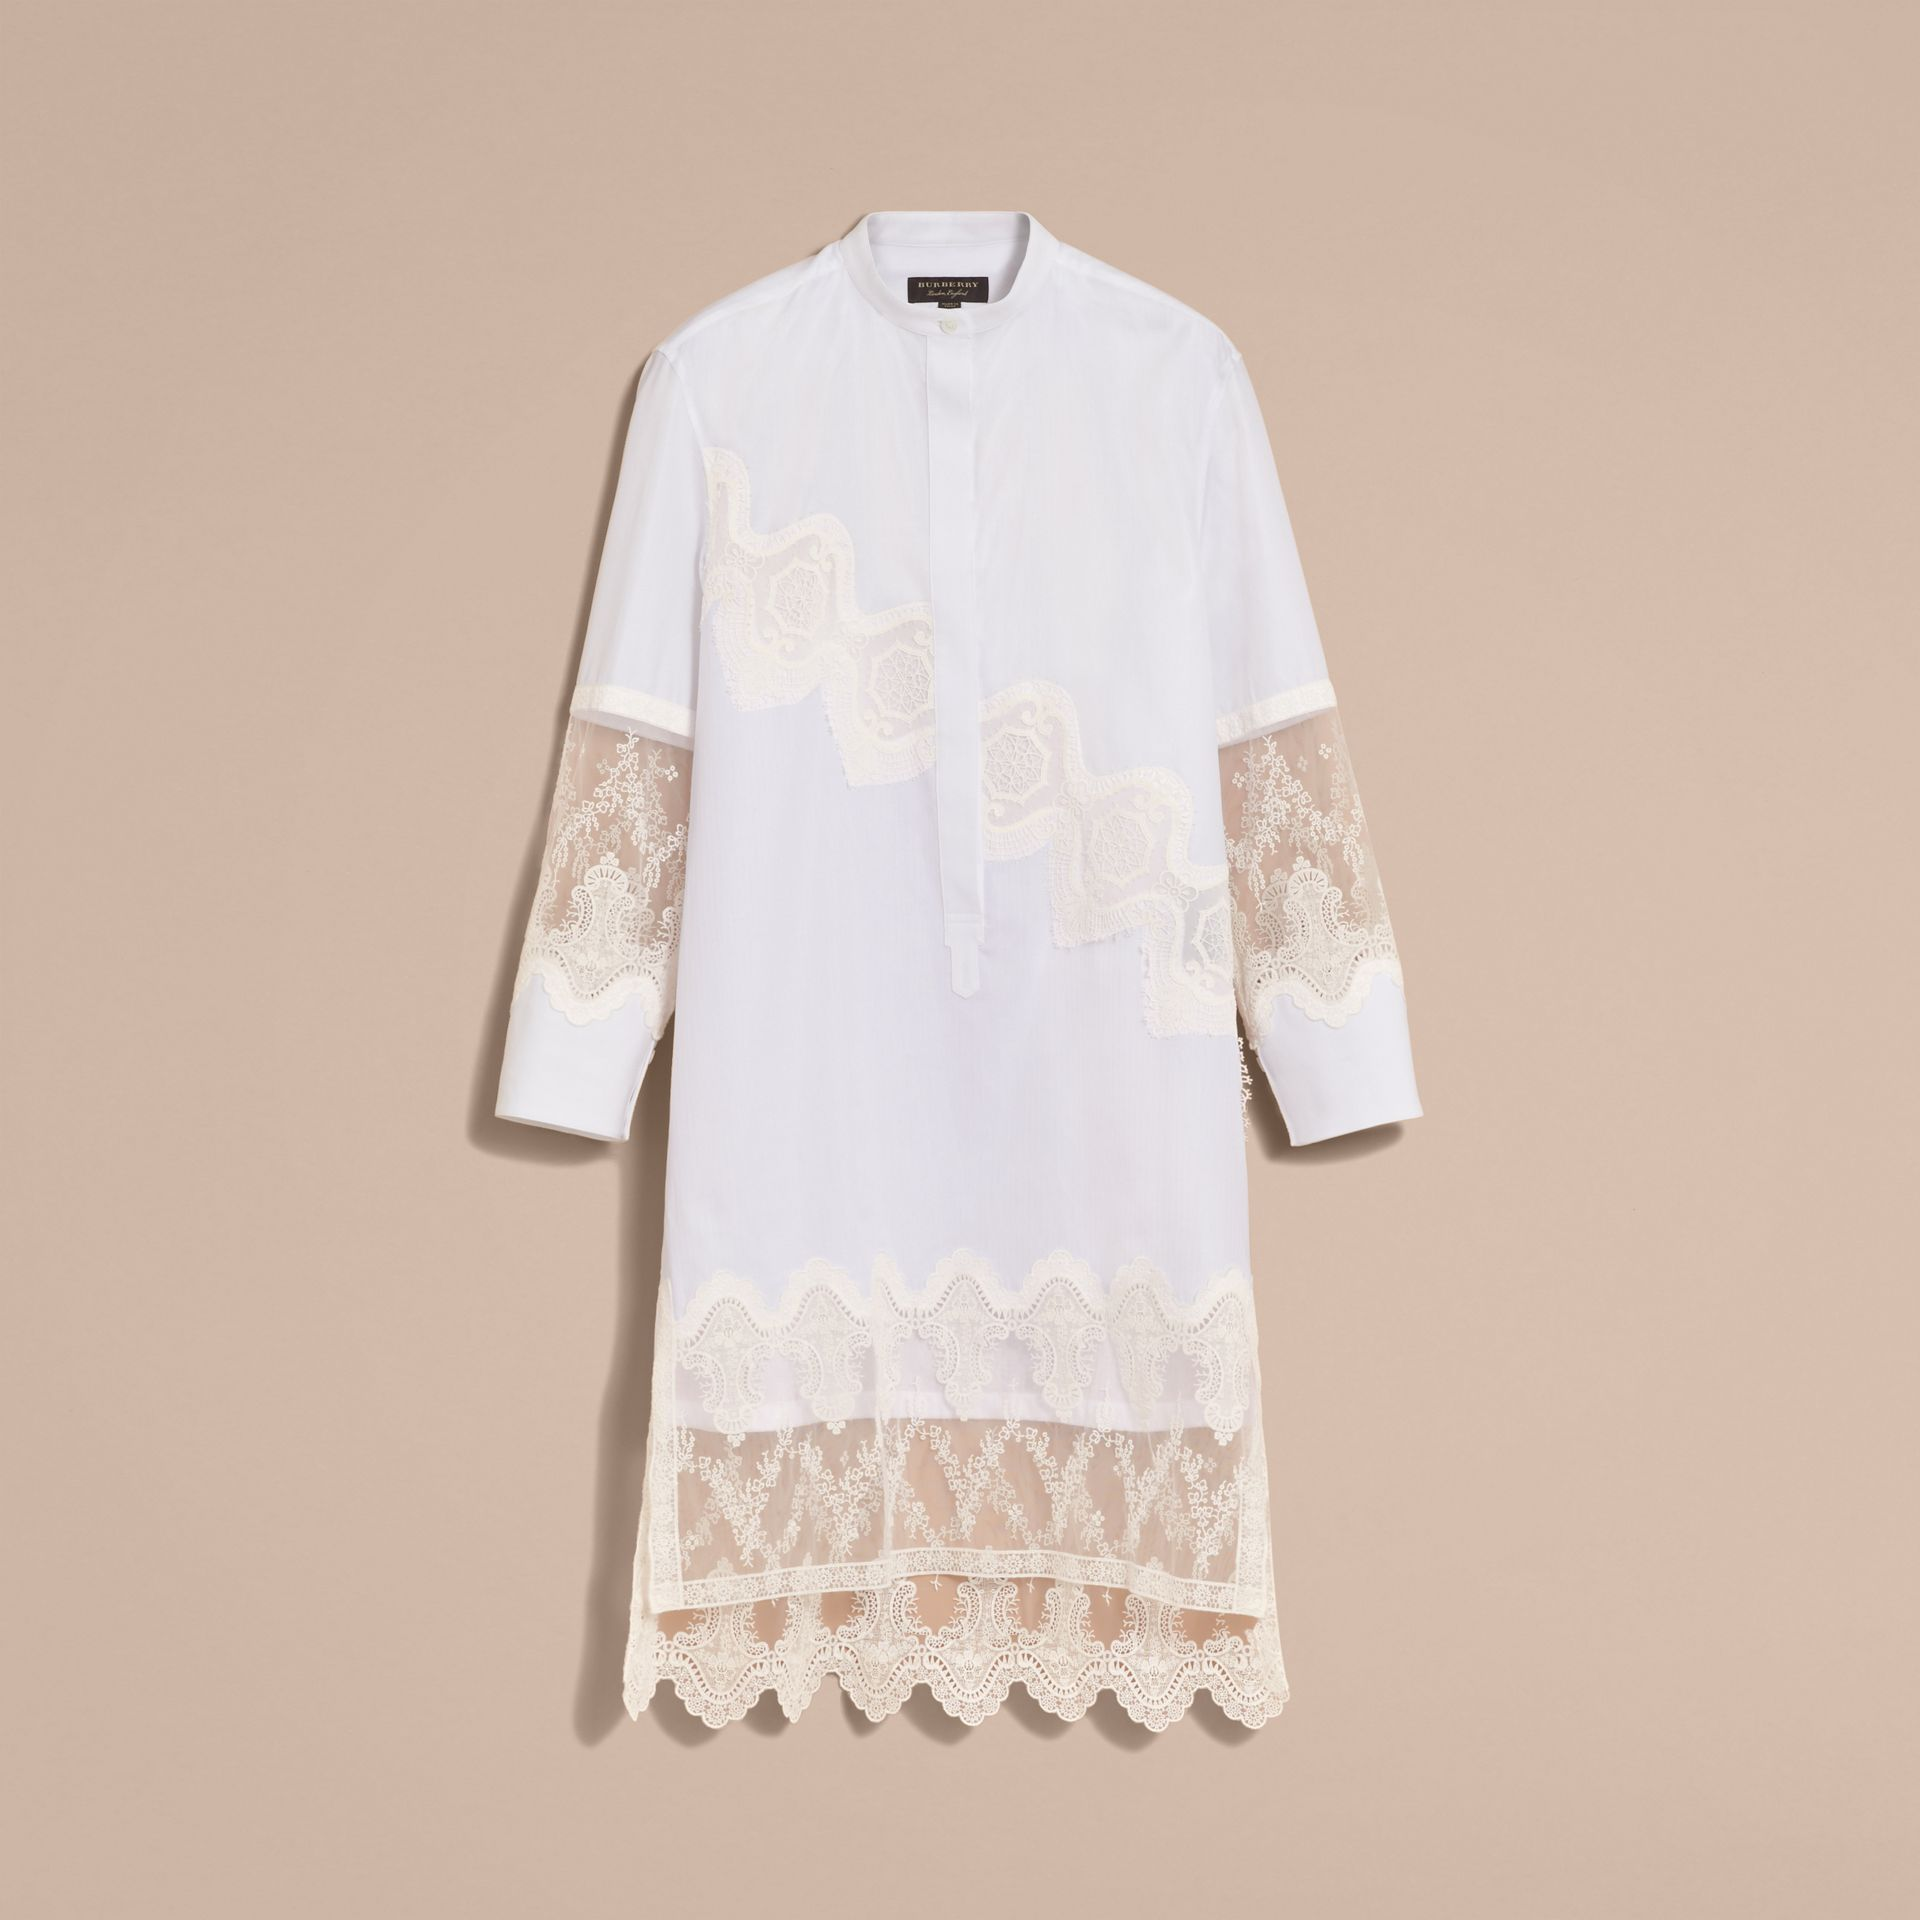 Lace Cutwork Cotton Shirt Dress in White - Women | Burberry - gallery image 4